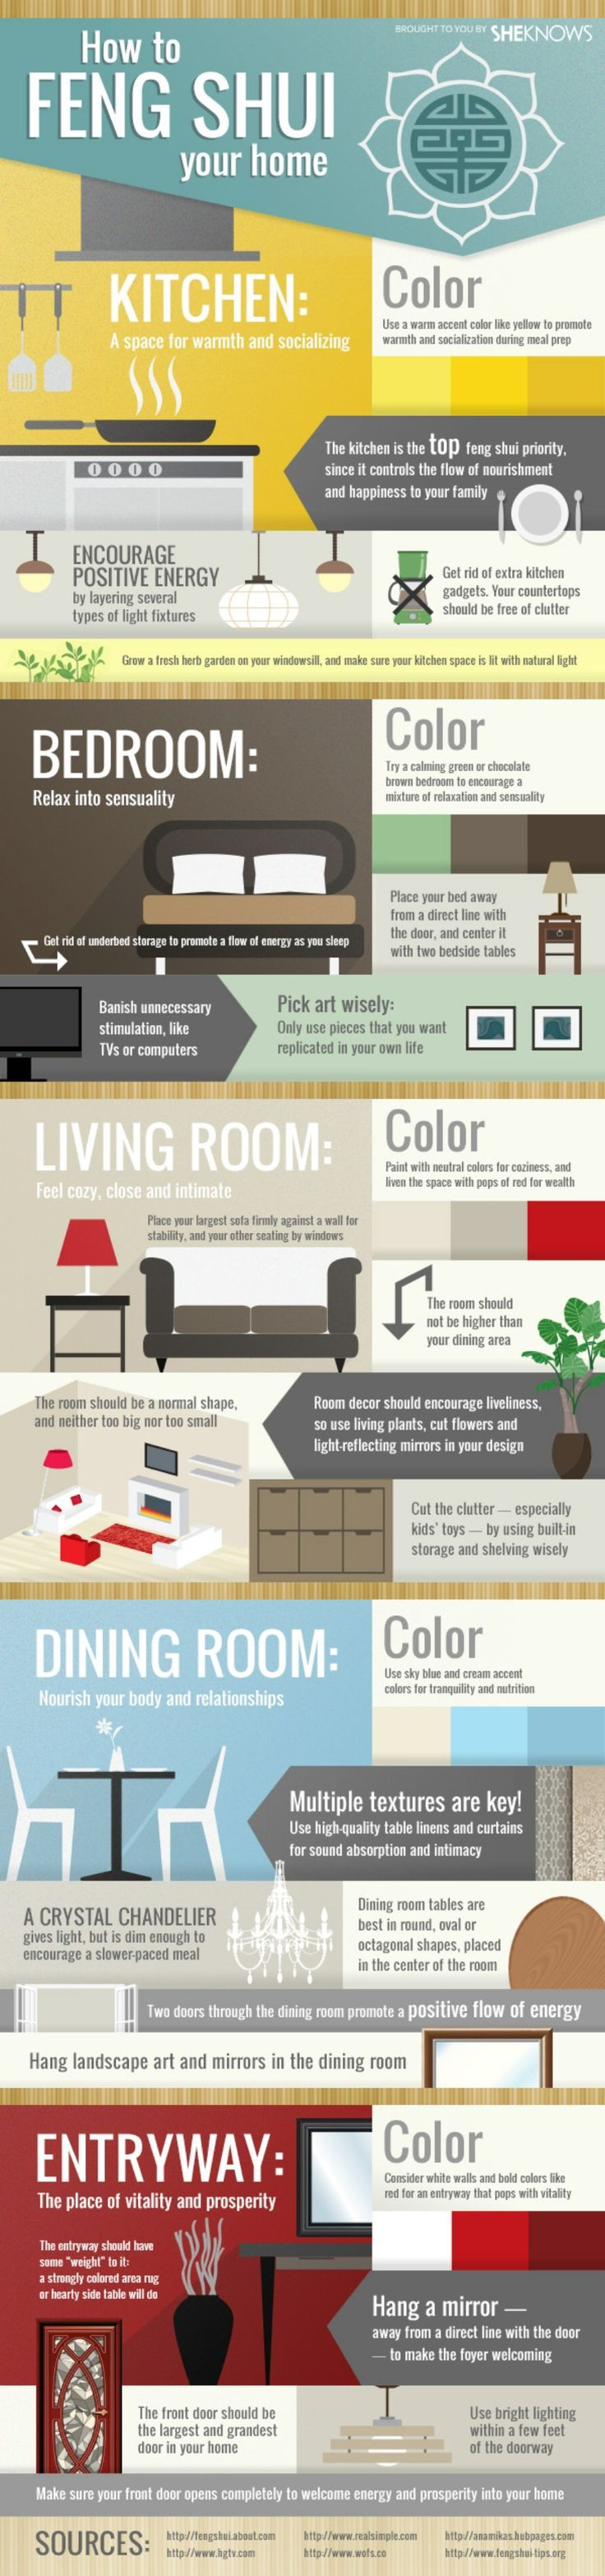 Best Feng Shui Ideas On Pinterest Bedroom Fung Shui Feng